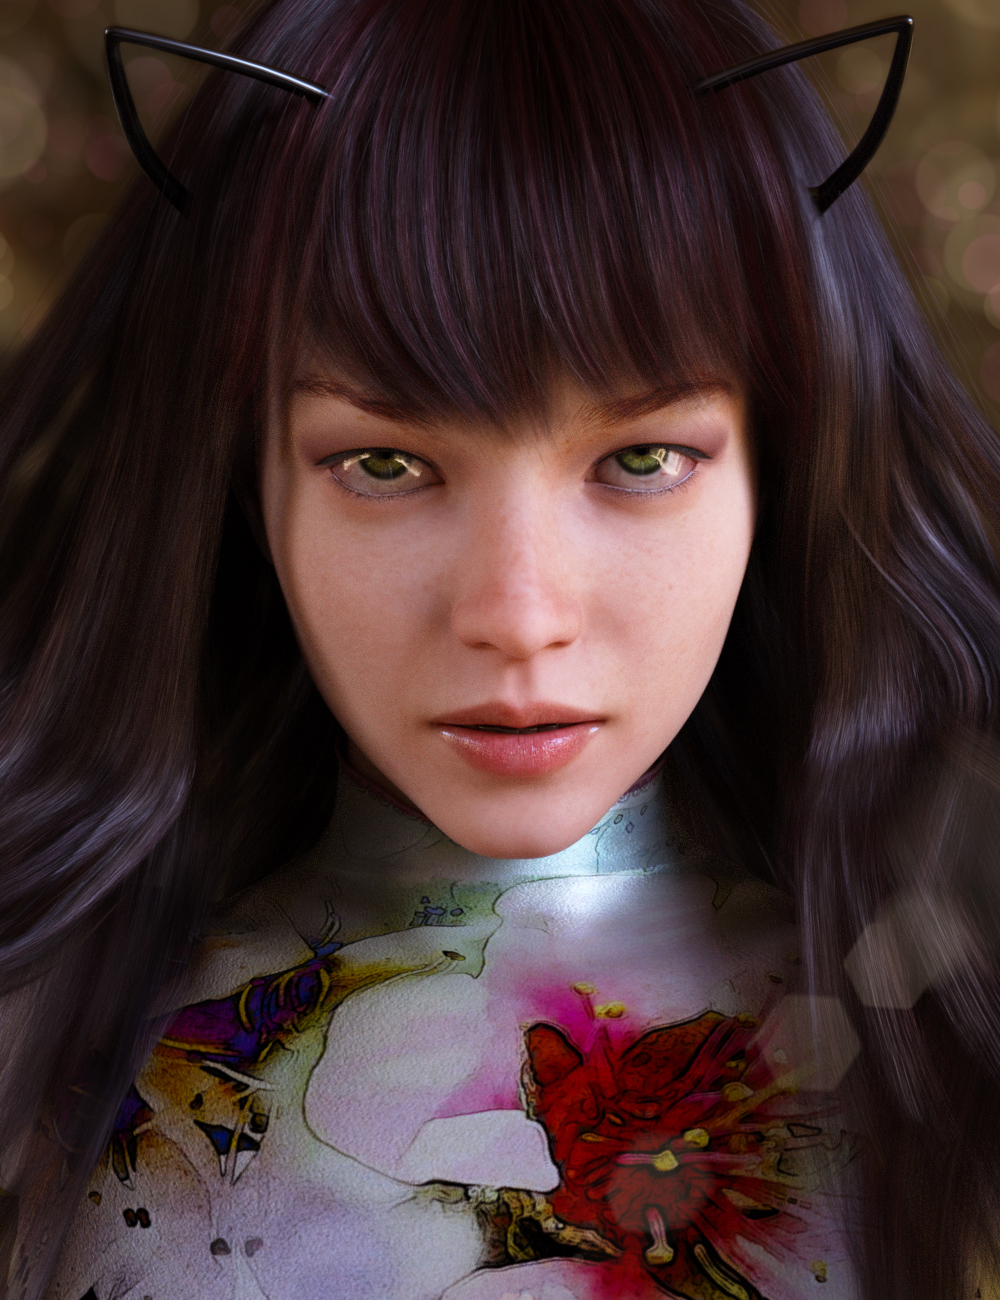 Rosaleen for Genesis 8 Female by: iSourceTextures, 3D Models by Daz 3D